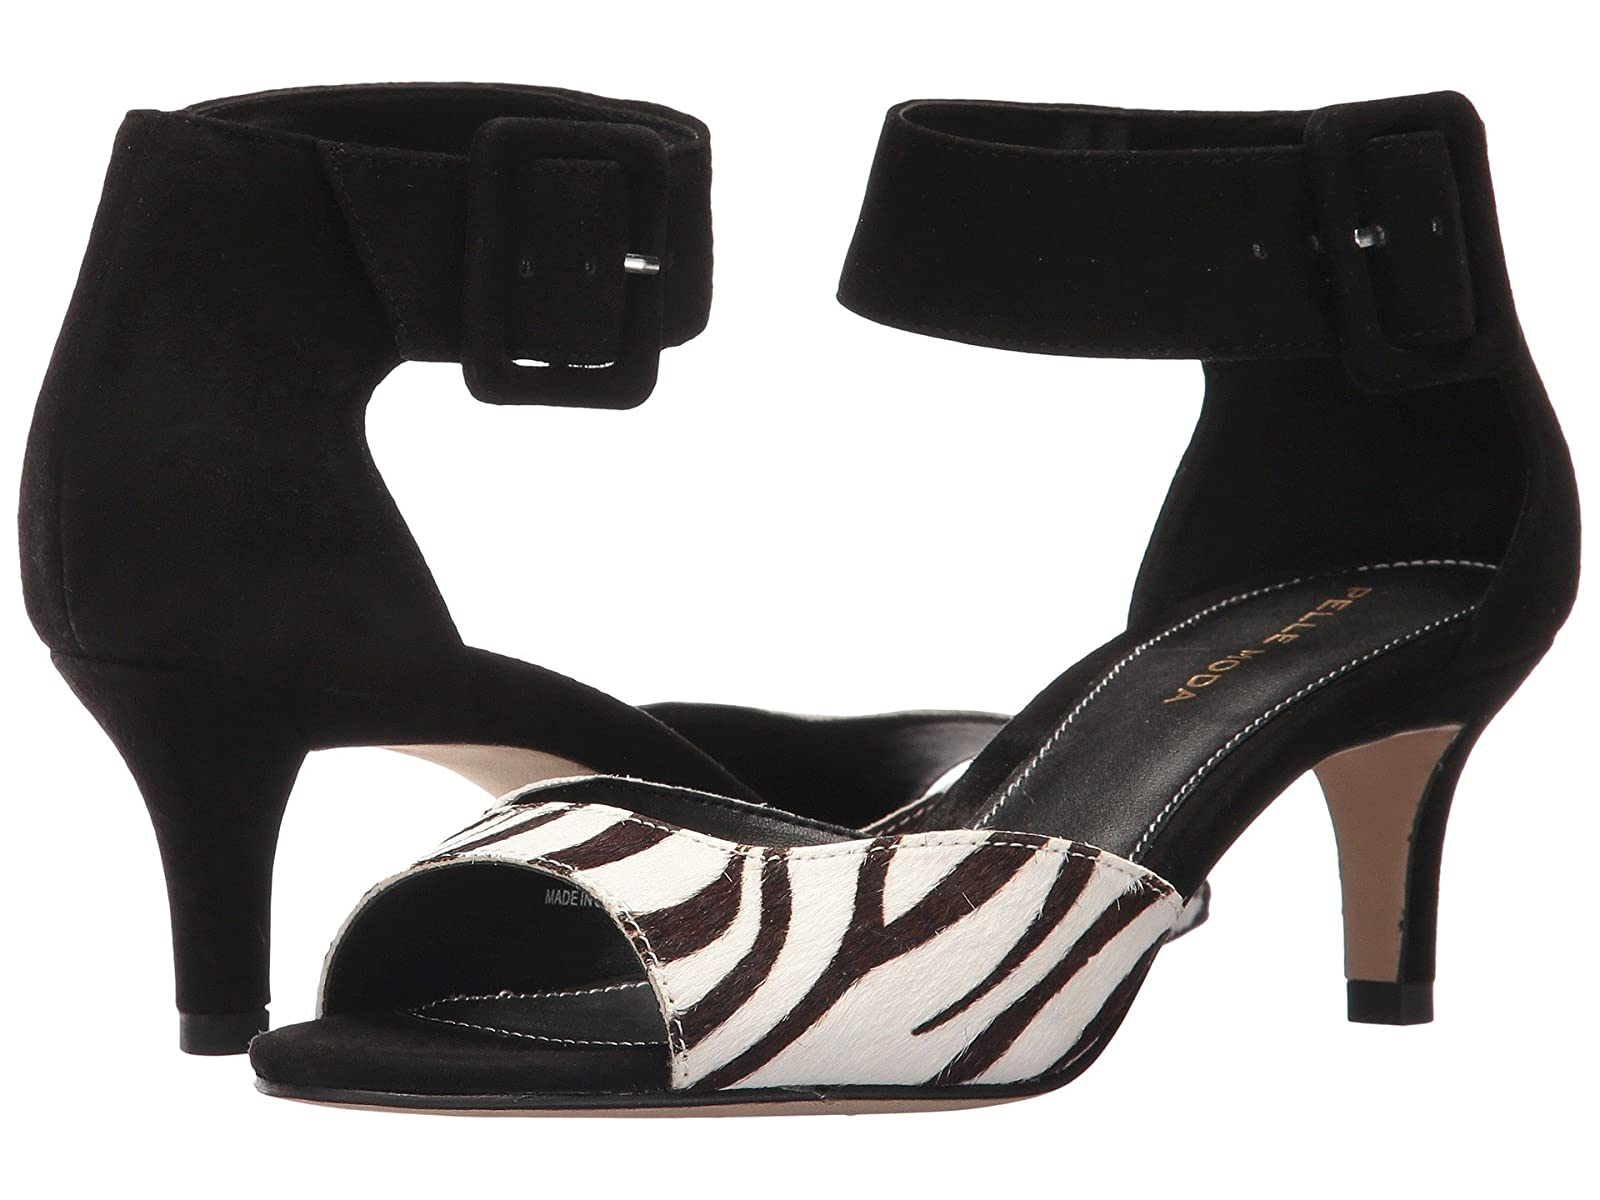 Pelle Moda BerlinCheap and distinctive eye-catching shoes